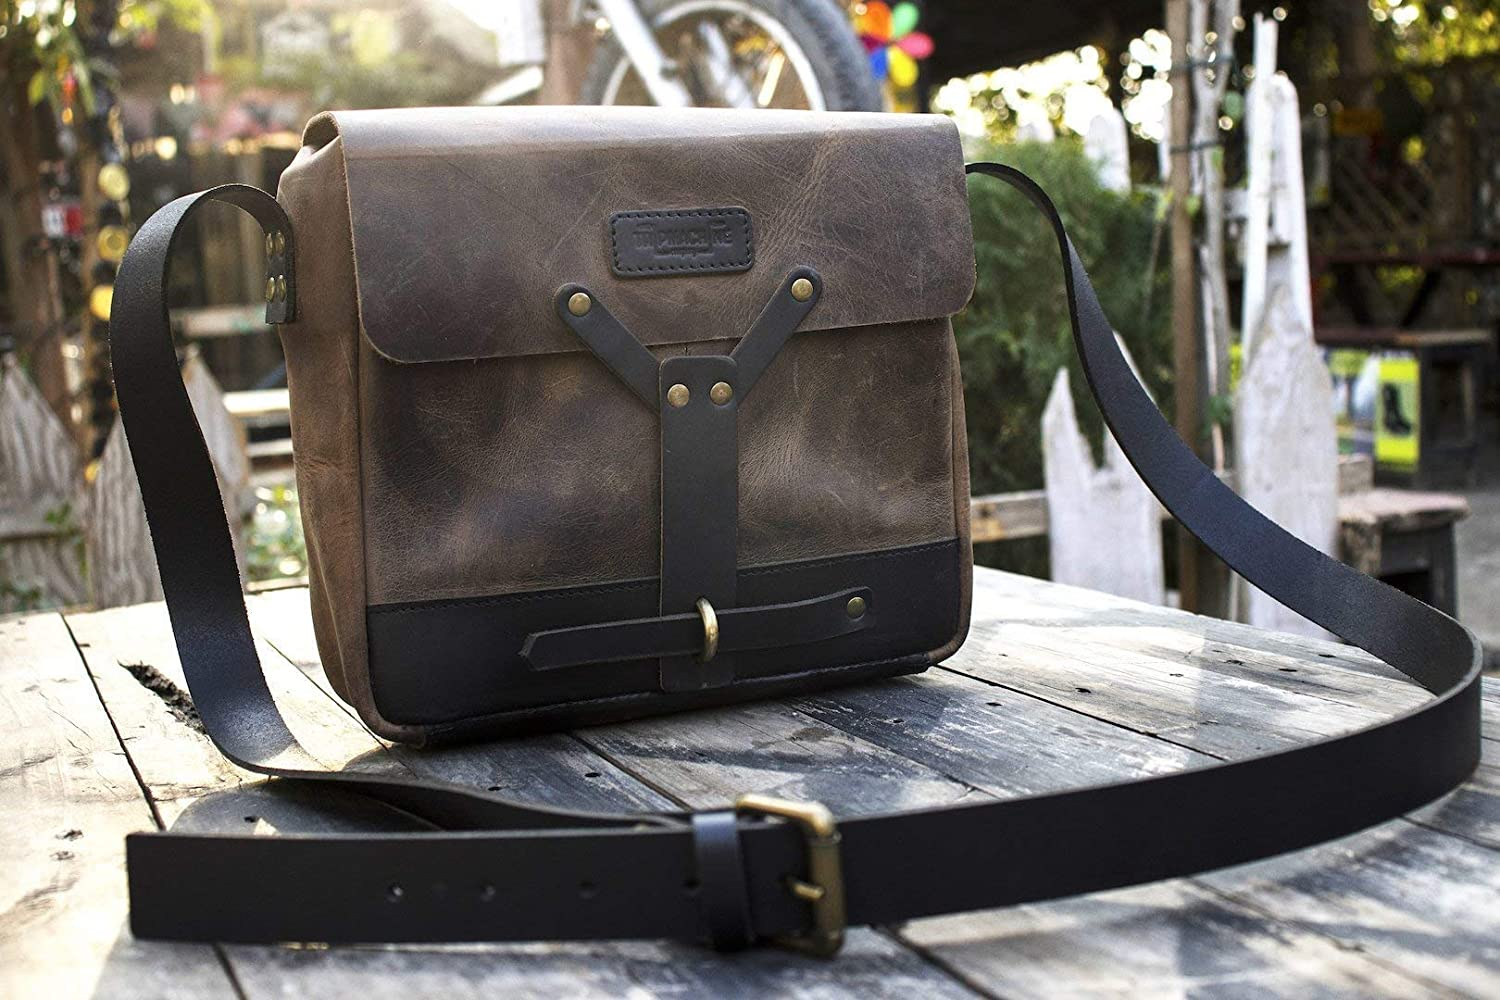 Trip Machine Company Leather Vintage Messenger Bag/Leather Satchel - Tobacco Brown